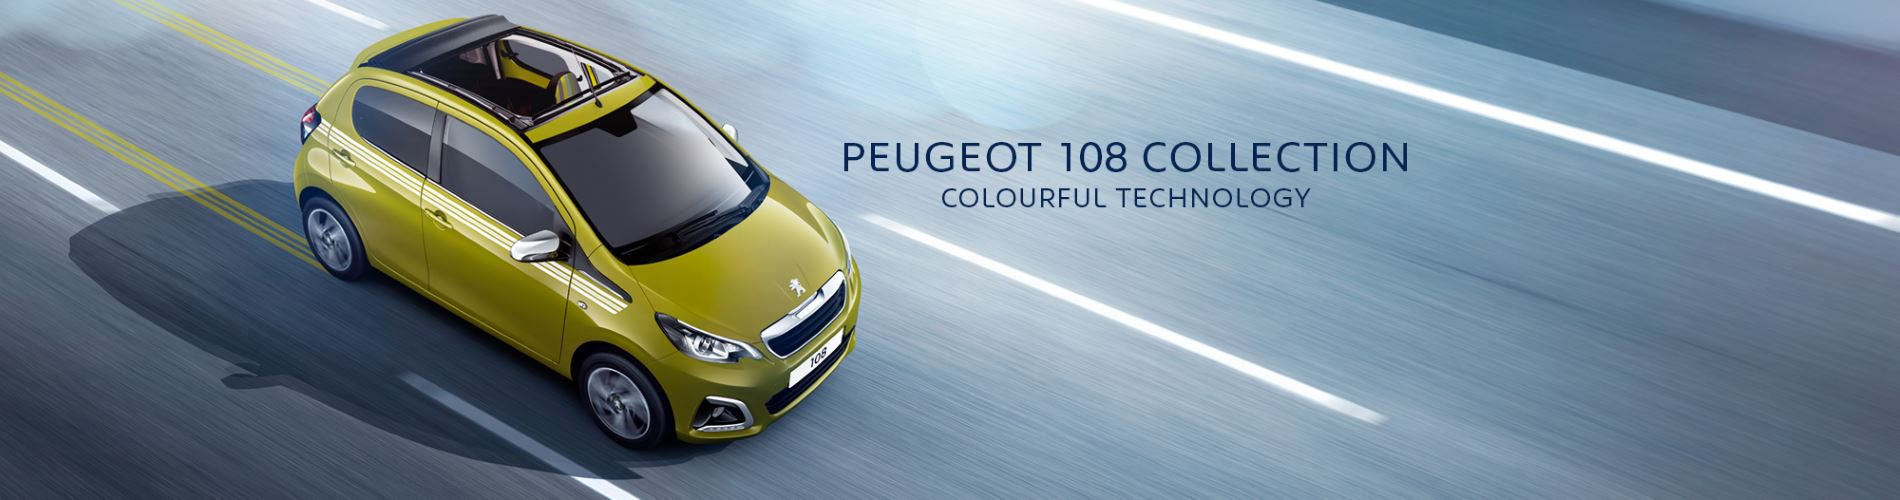 New Peugeot 108 Offer at Wycliffe Peugeot Rugby